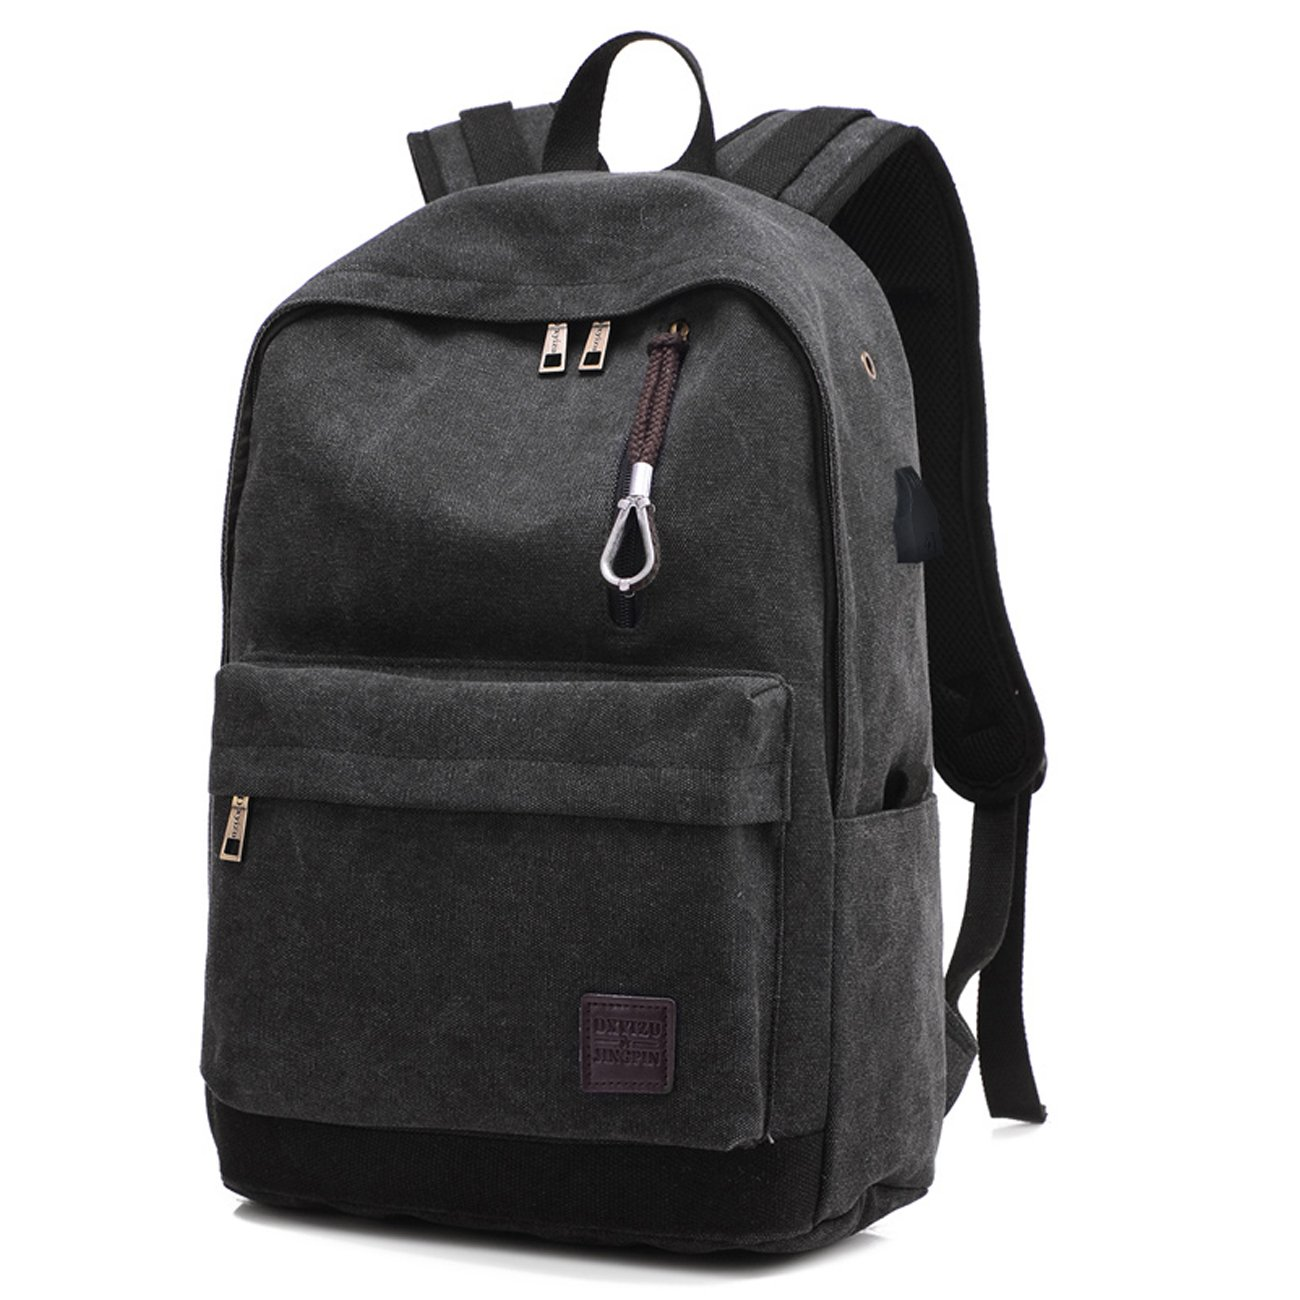 eb9541eb9e Backpack Canvas Men Male Backpacks Hoperay College Student School Bags for  Teenagers Vintage Mochila Casual Travel Daypack Laptop Backpacks with USB  ...